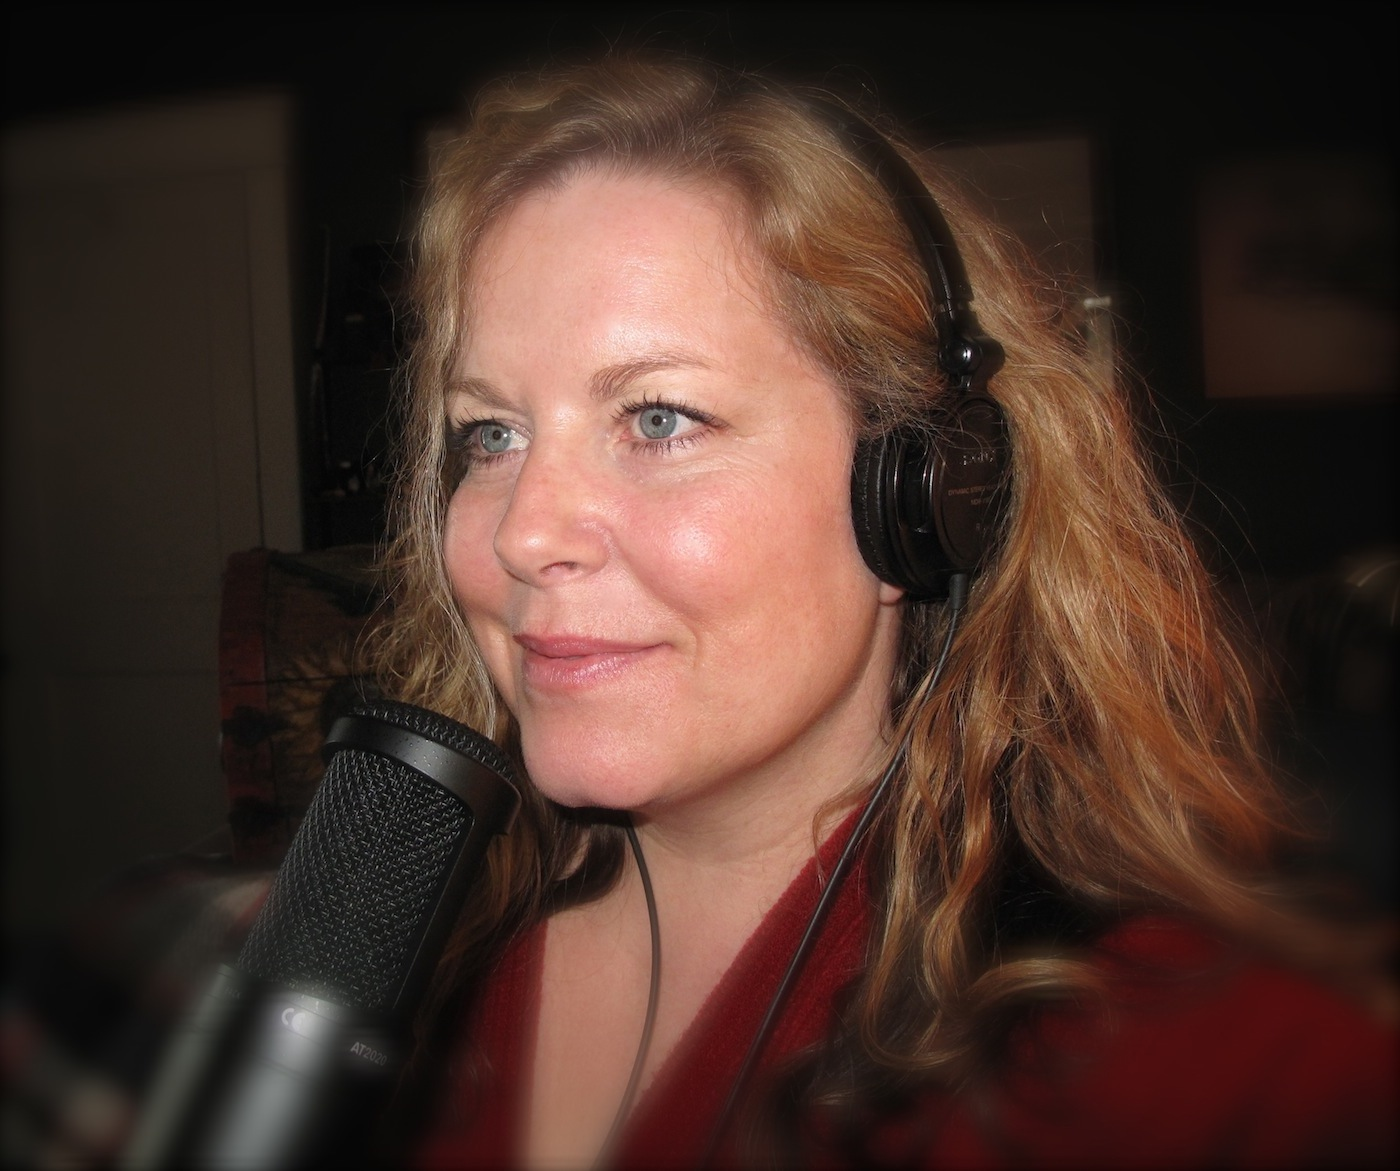 Need help with Podcasting or Media Services? Schedule a consultation with Shann Today